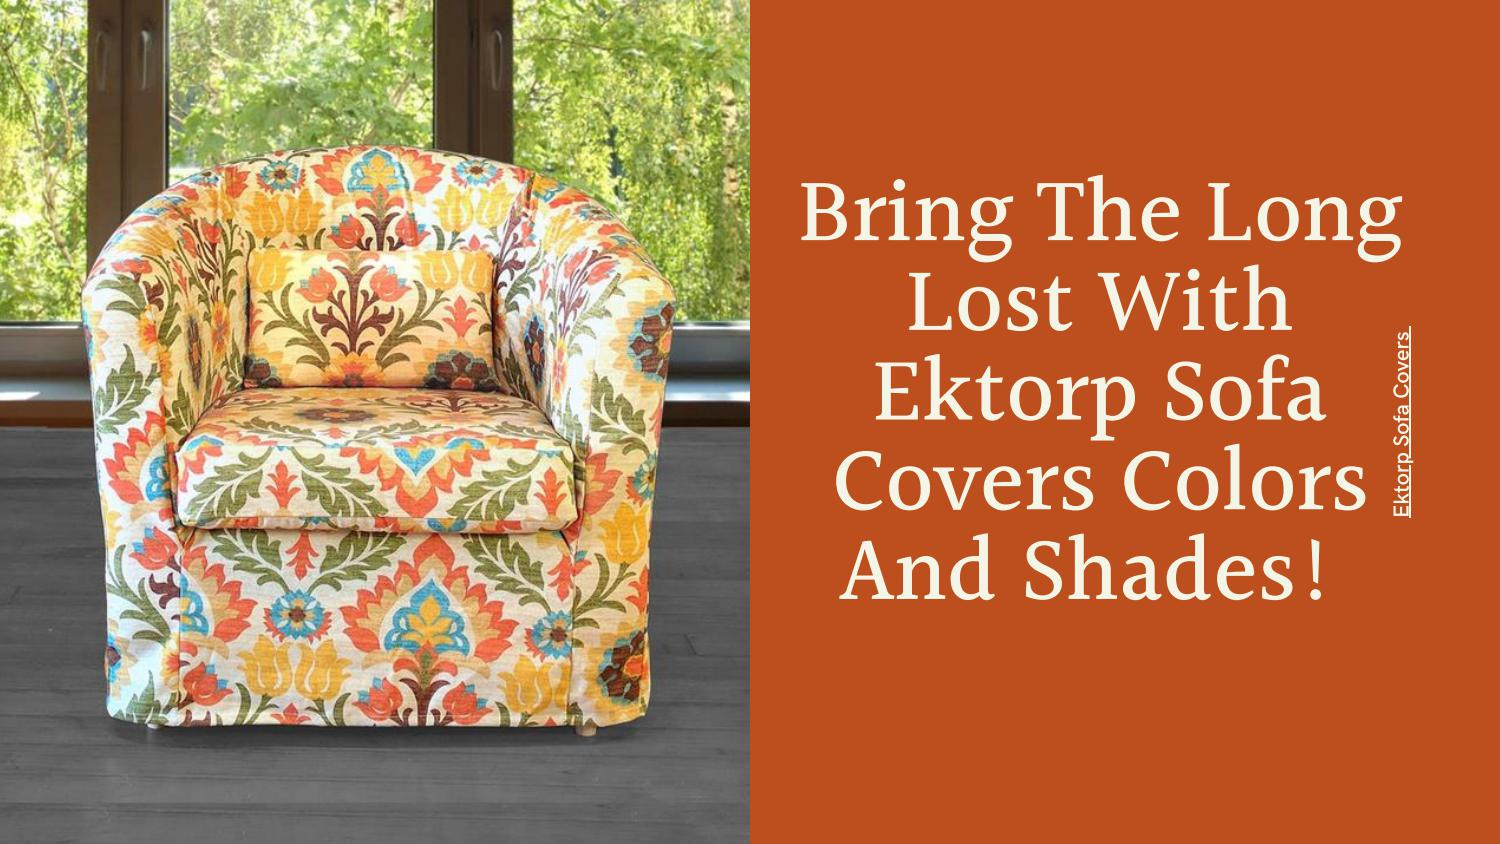 Issuu - Bring The Long Lost With Ektorp Sofa Covers Colors And Shades!